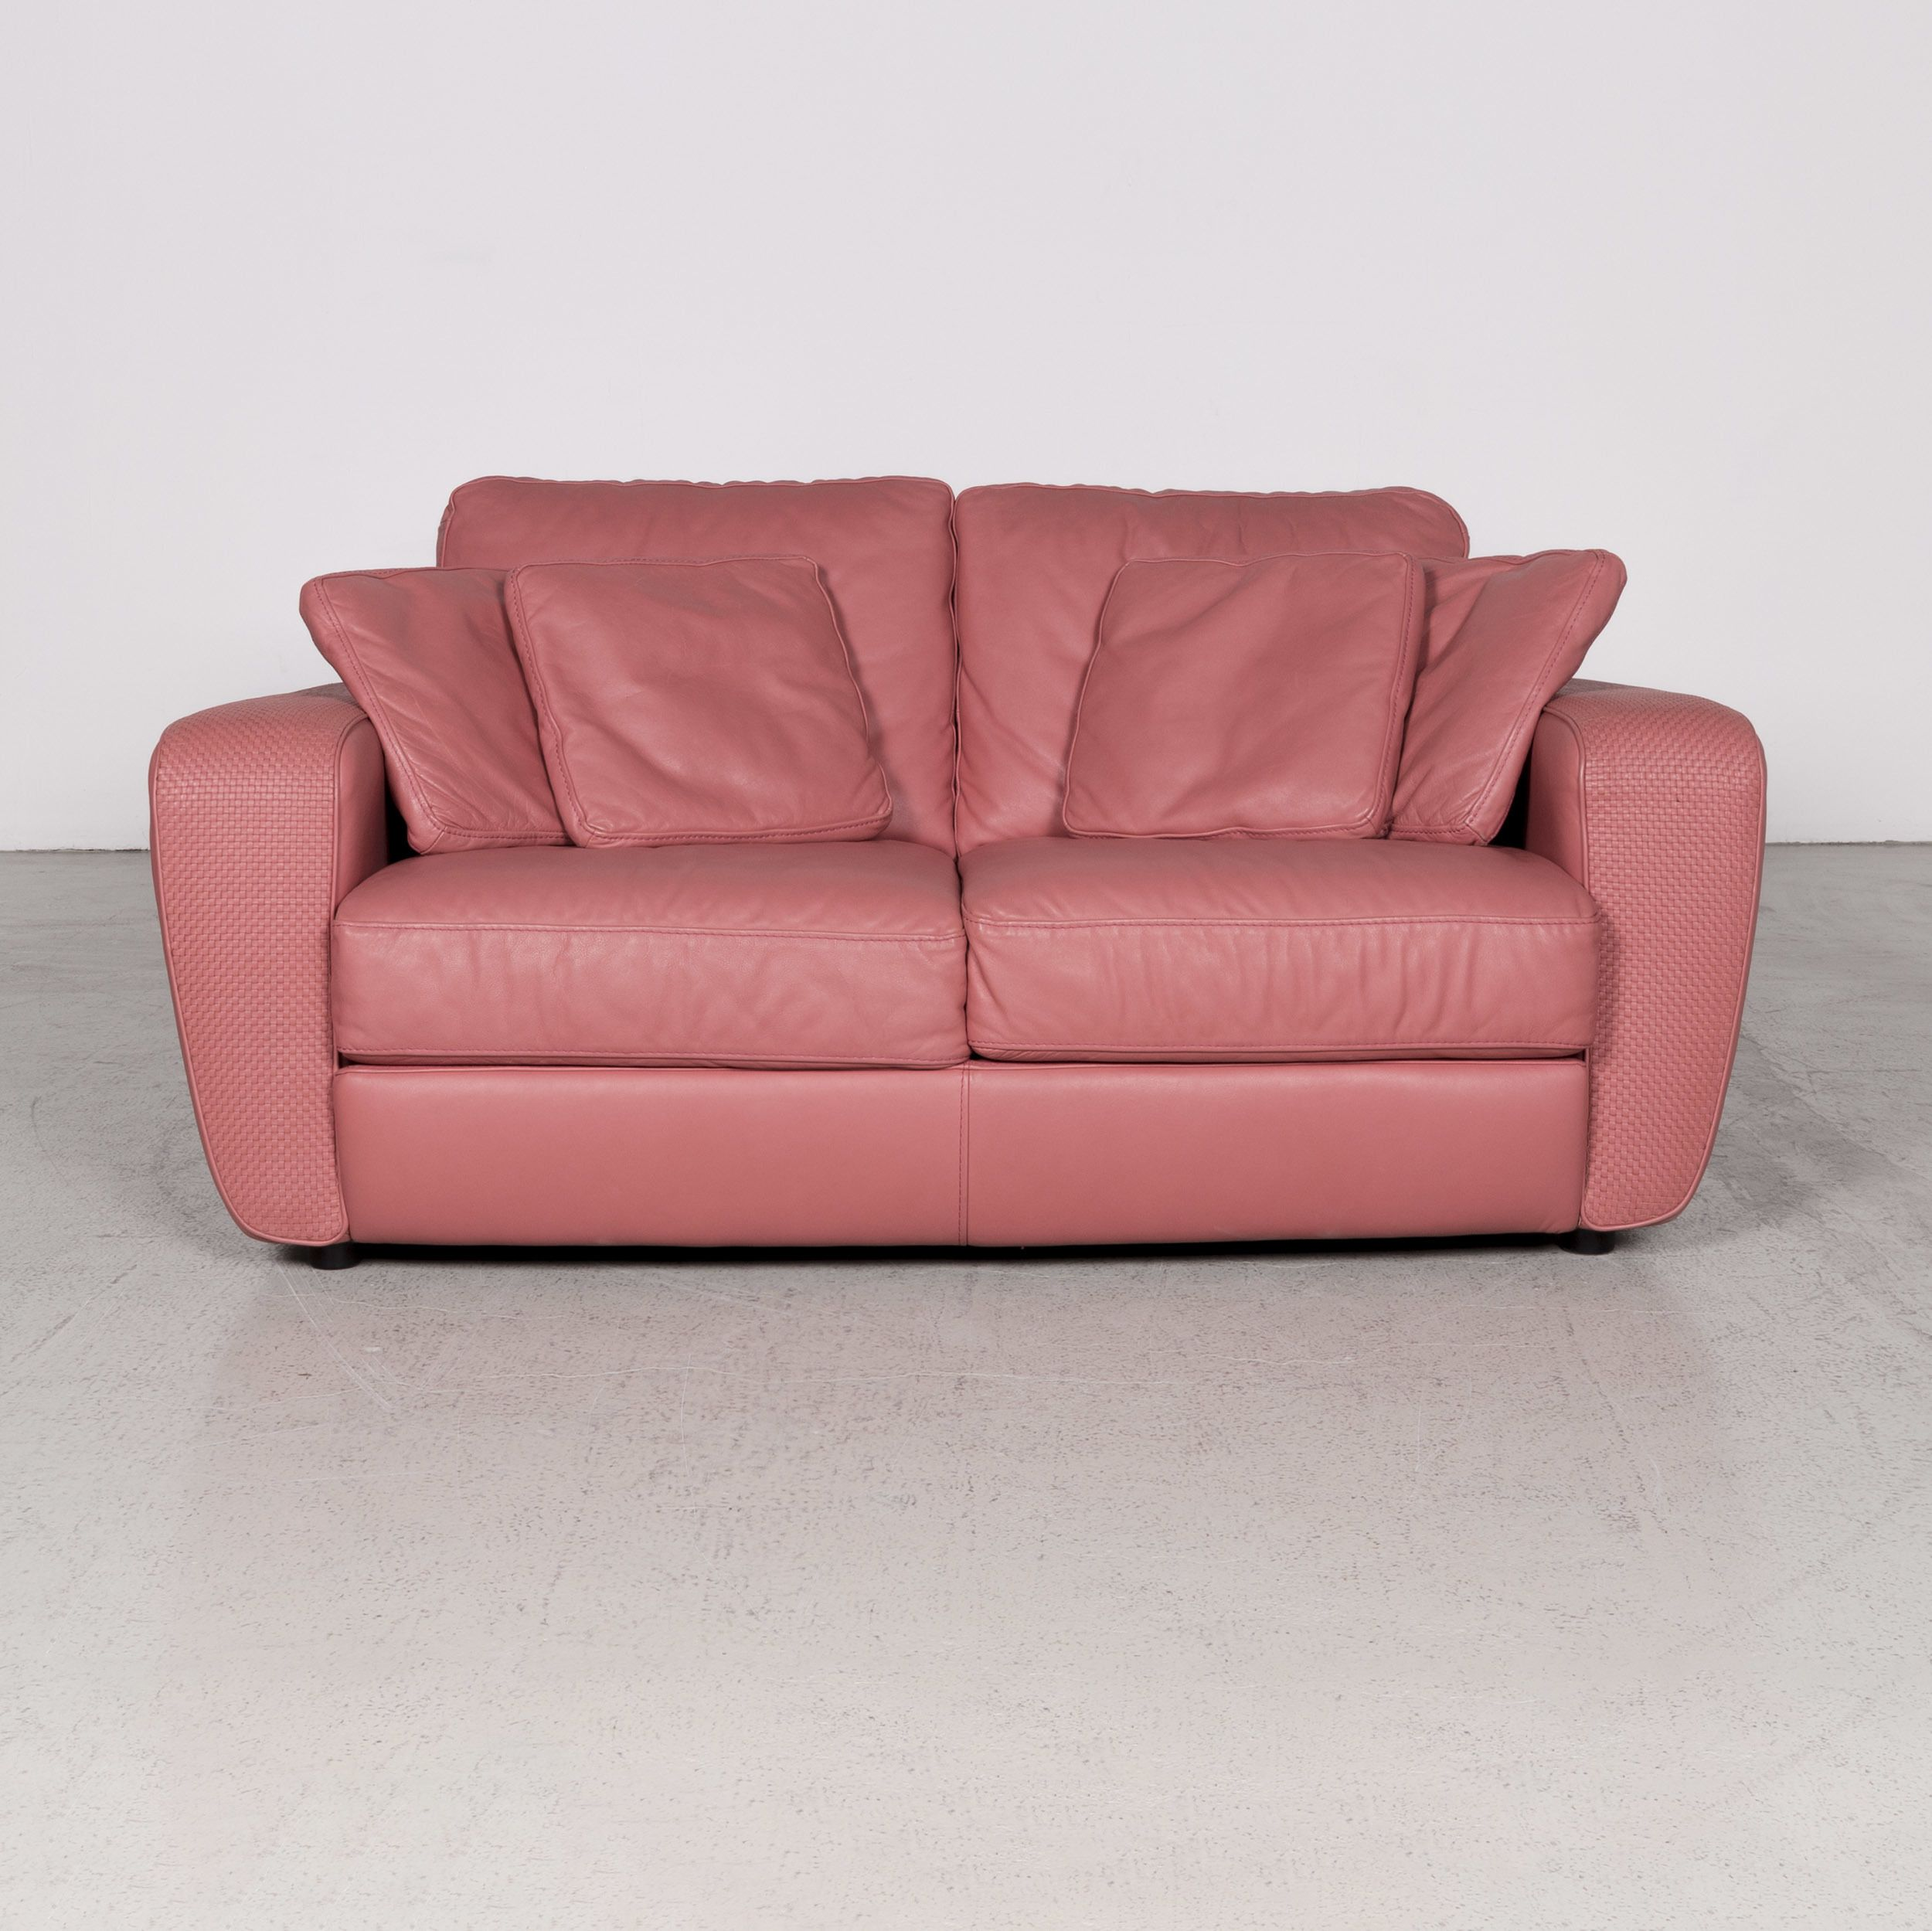 Natuzzi Designer Leather Sofa Red Pink Real Leather Two Seater Couch 7791 Pink Leather Sofas Red Sofa Leather Sofa